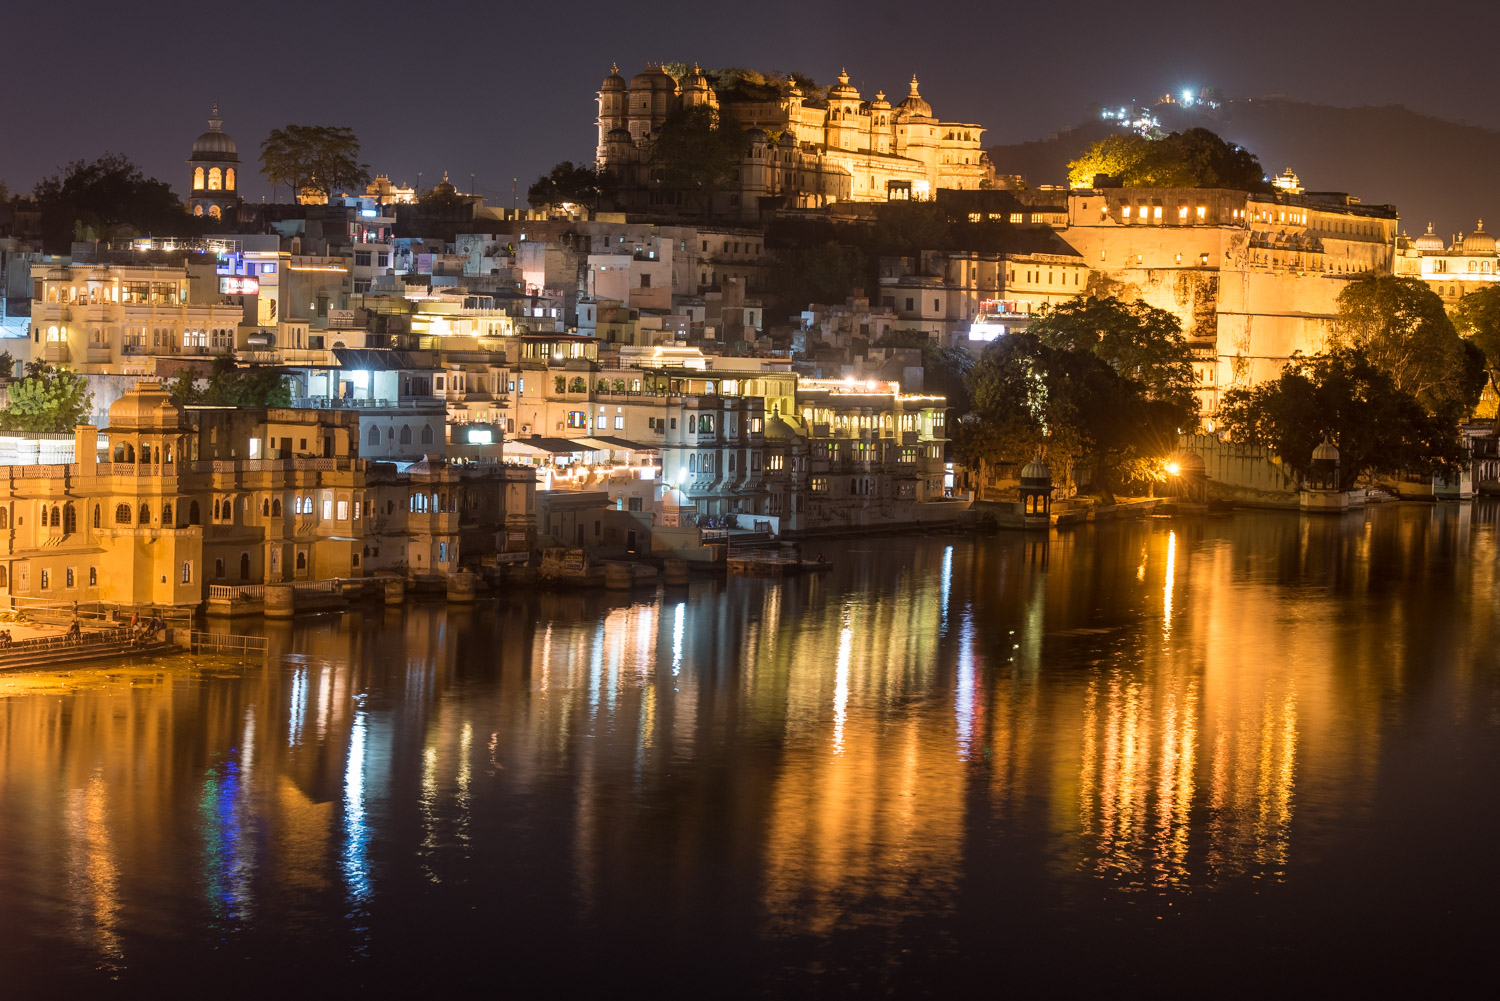 Udaipur at night